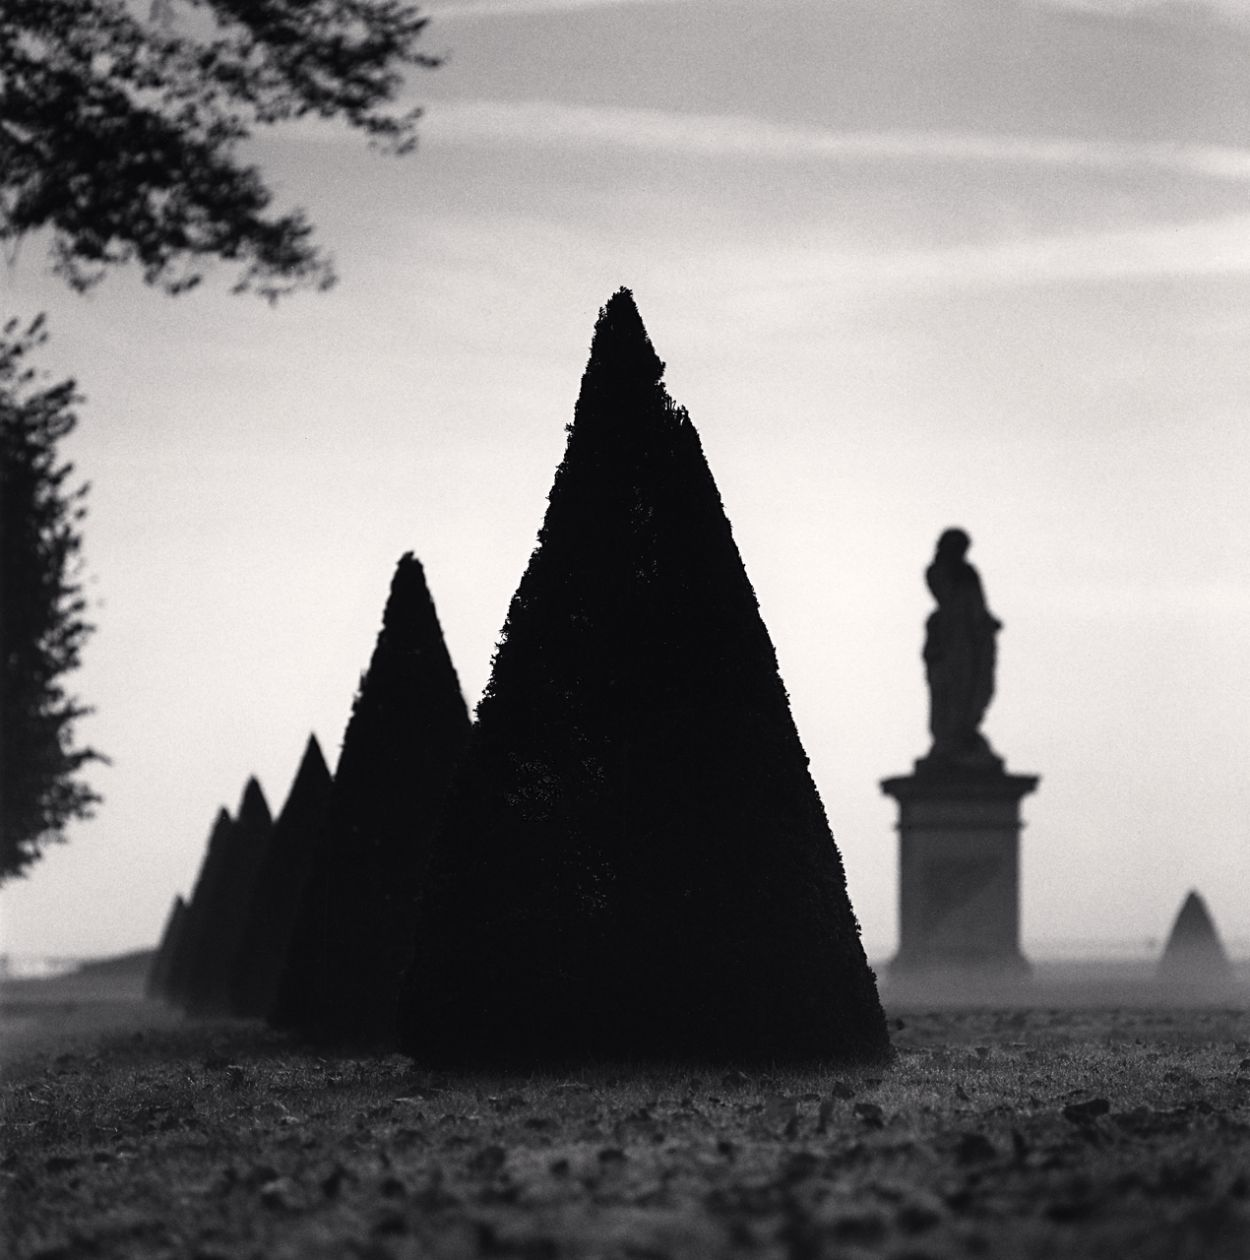 Ground Mist, St. Germaine-En-Laye (1996) by Michael Kenna